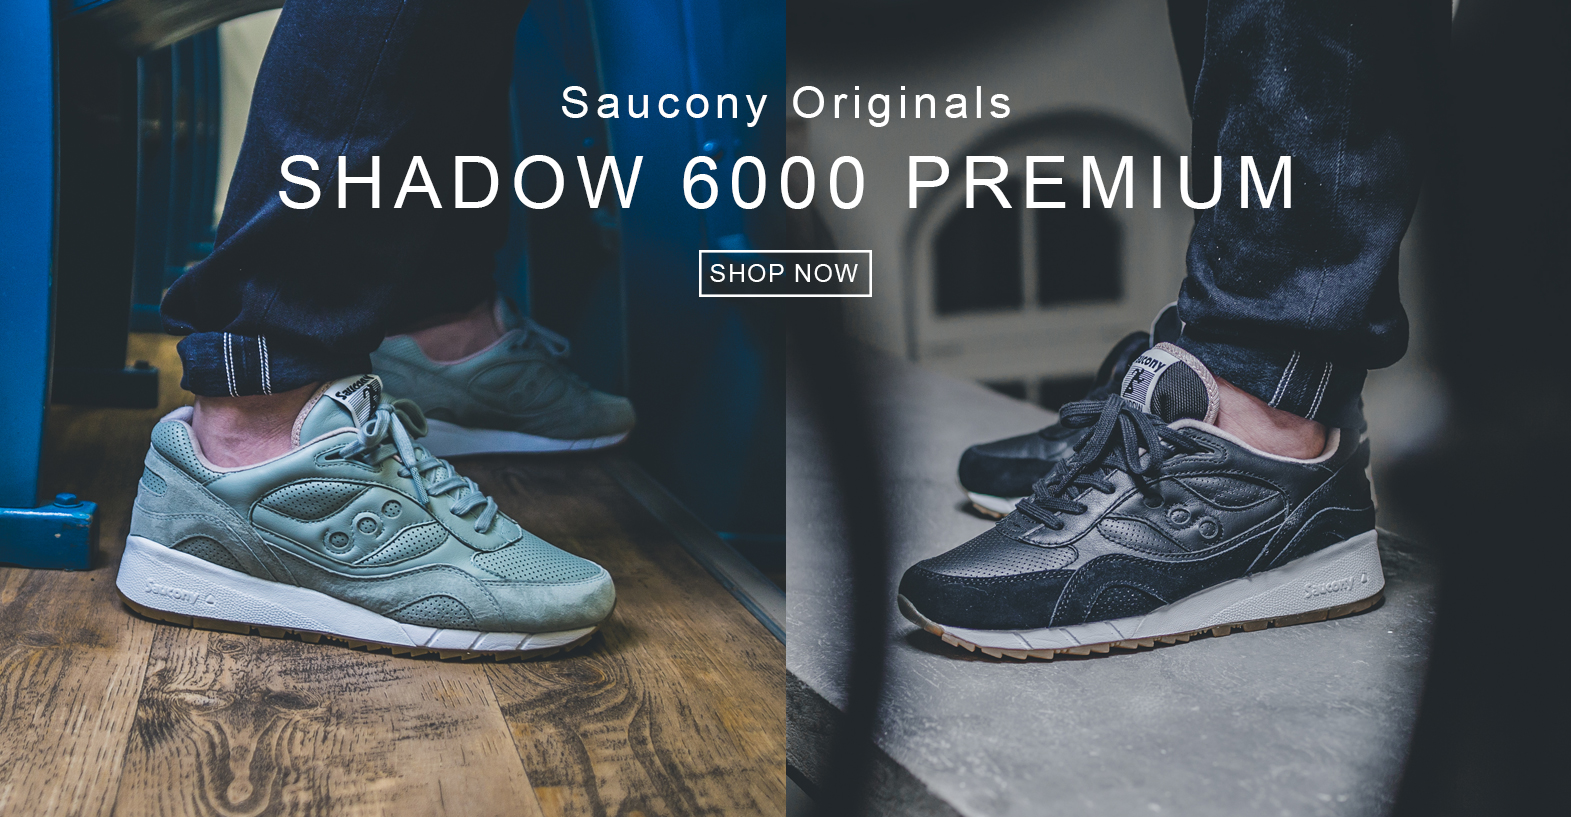 SAUCONY SHADOW 6000 SHOP NOW